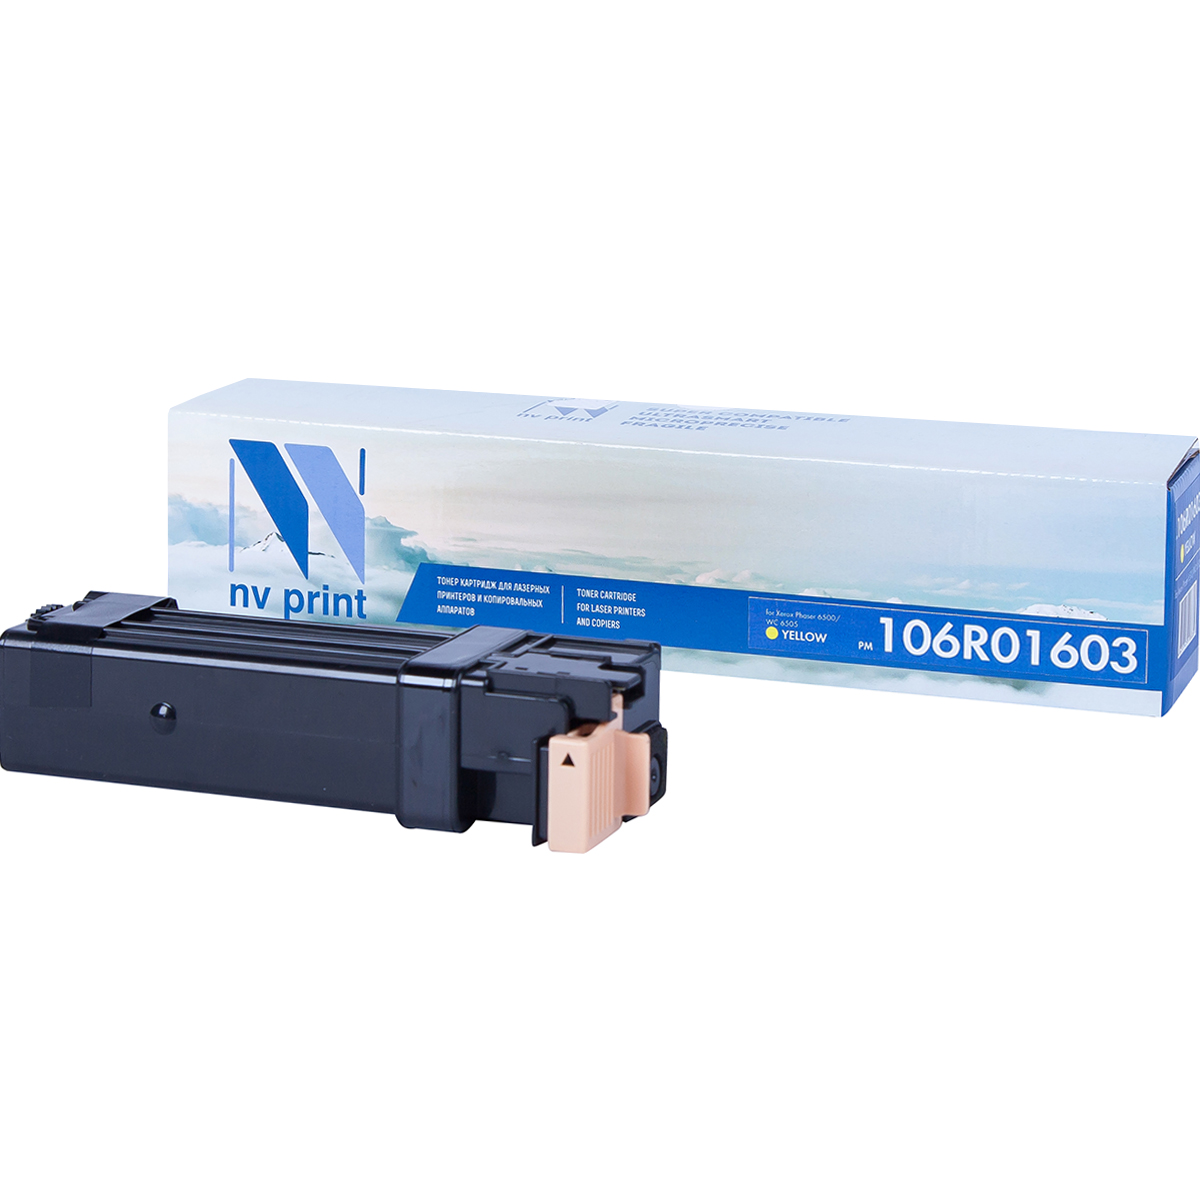 Картридж NV Print 106R01603 Yellow для Xerox Phaser WorkCentre 6505 (2500k) картридж xerox 106r01075 yellow для phaser 6300 6350 4000стр